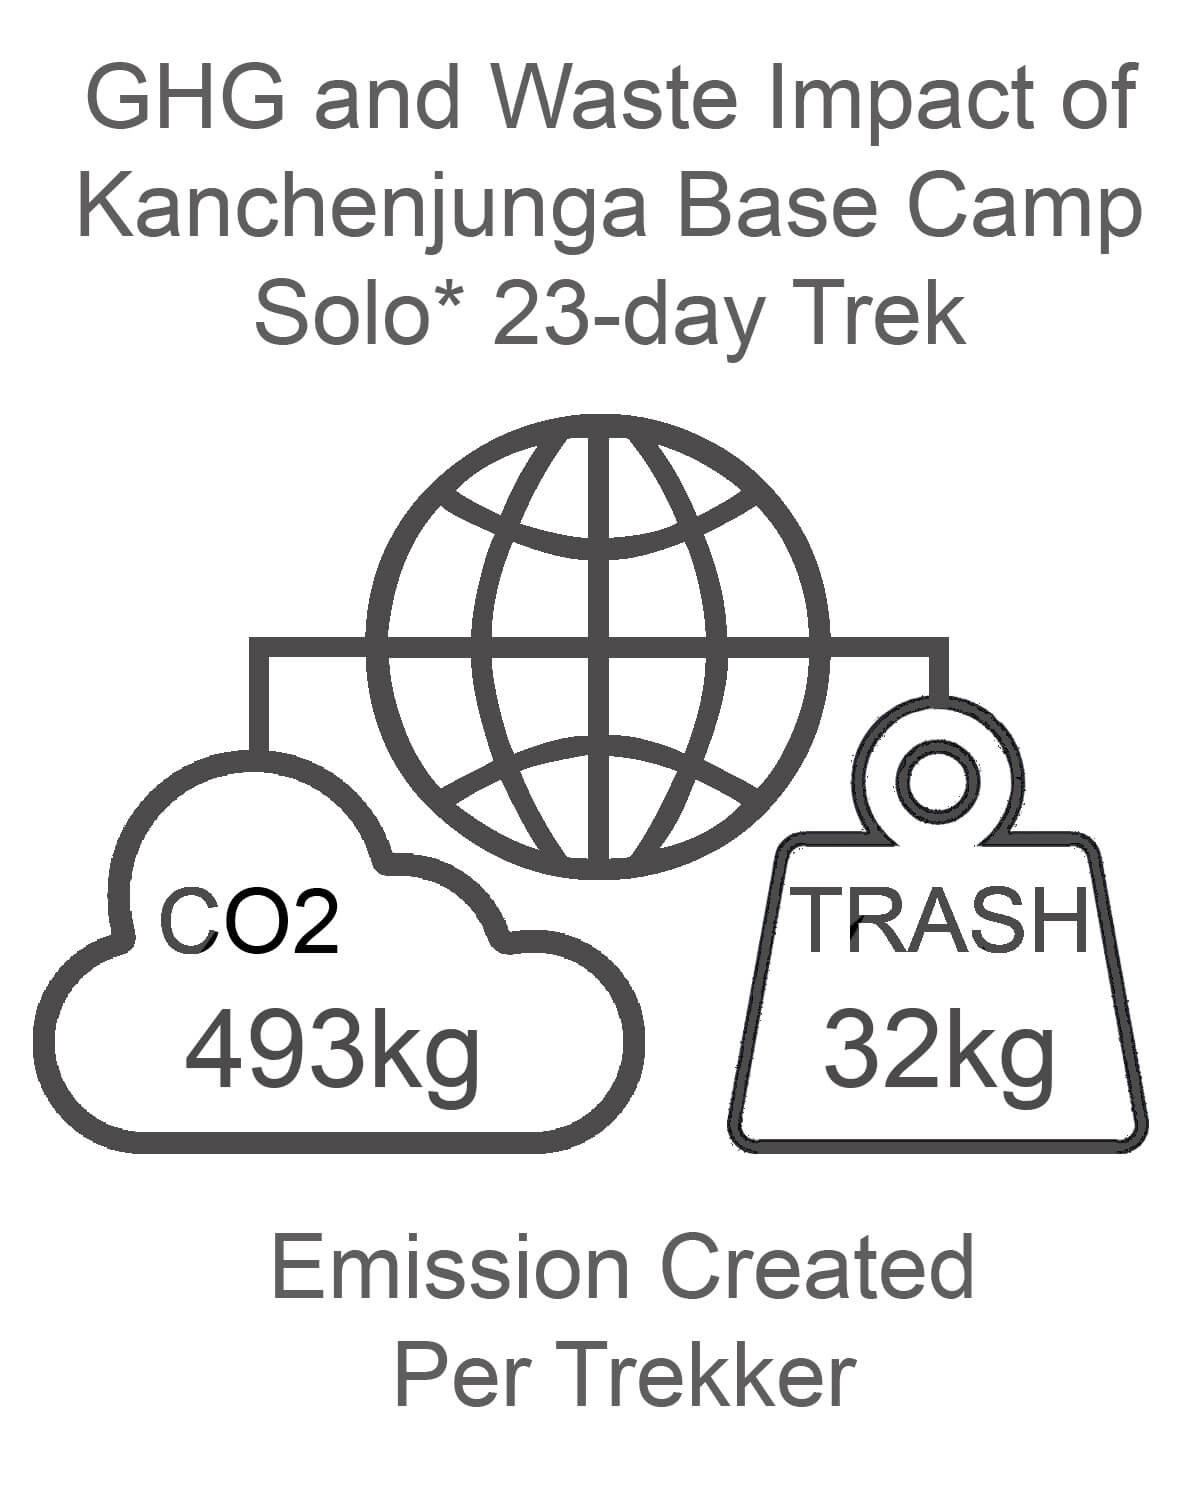 Kanchenjunga Base Camp GHG and Waste Impact SOLO